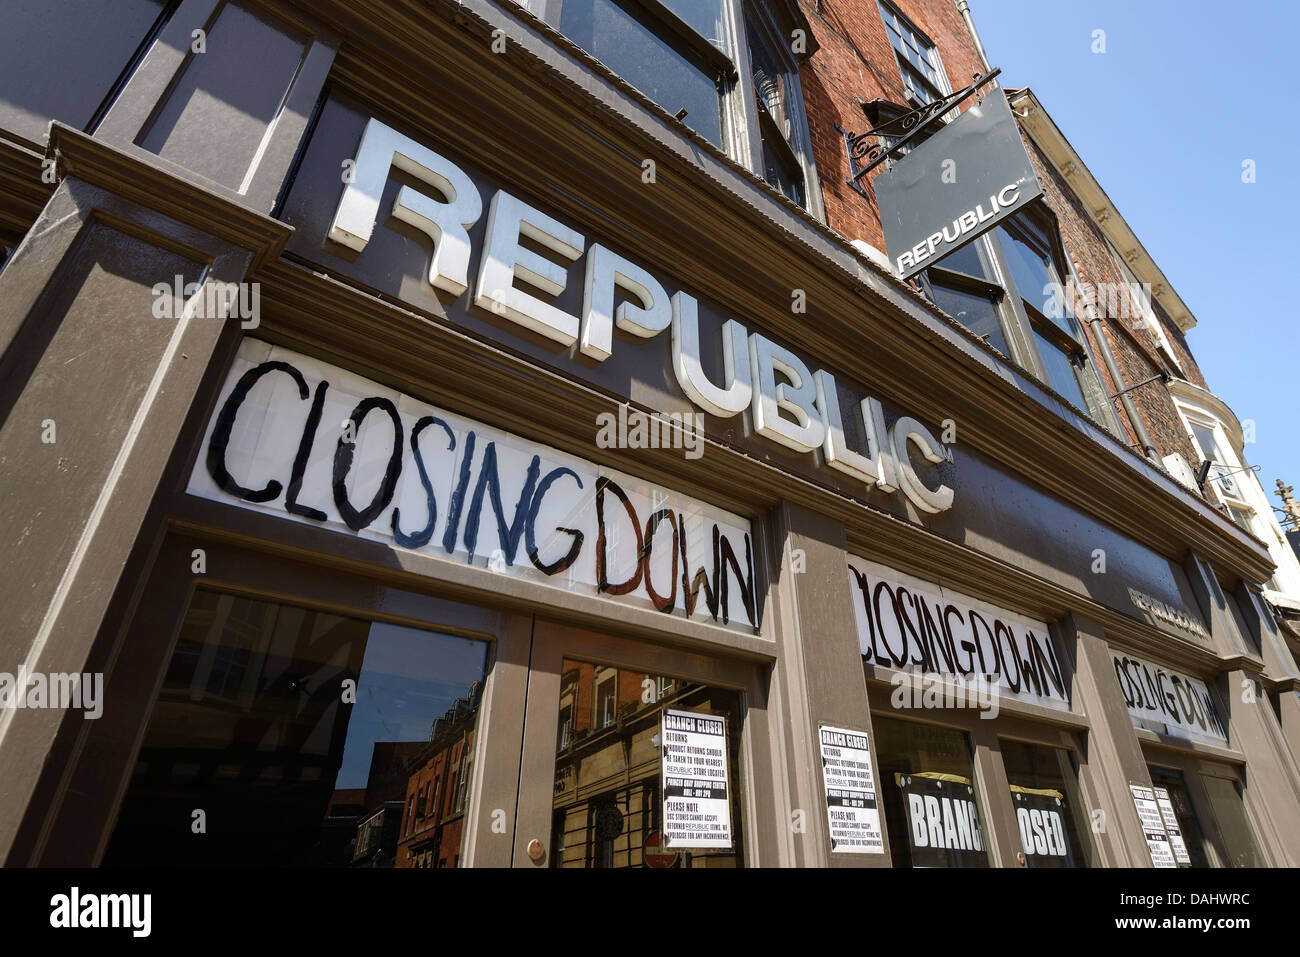 The York branch of the retail chain Republic with Closing Down notices in the windows - Stock Image